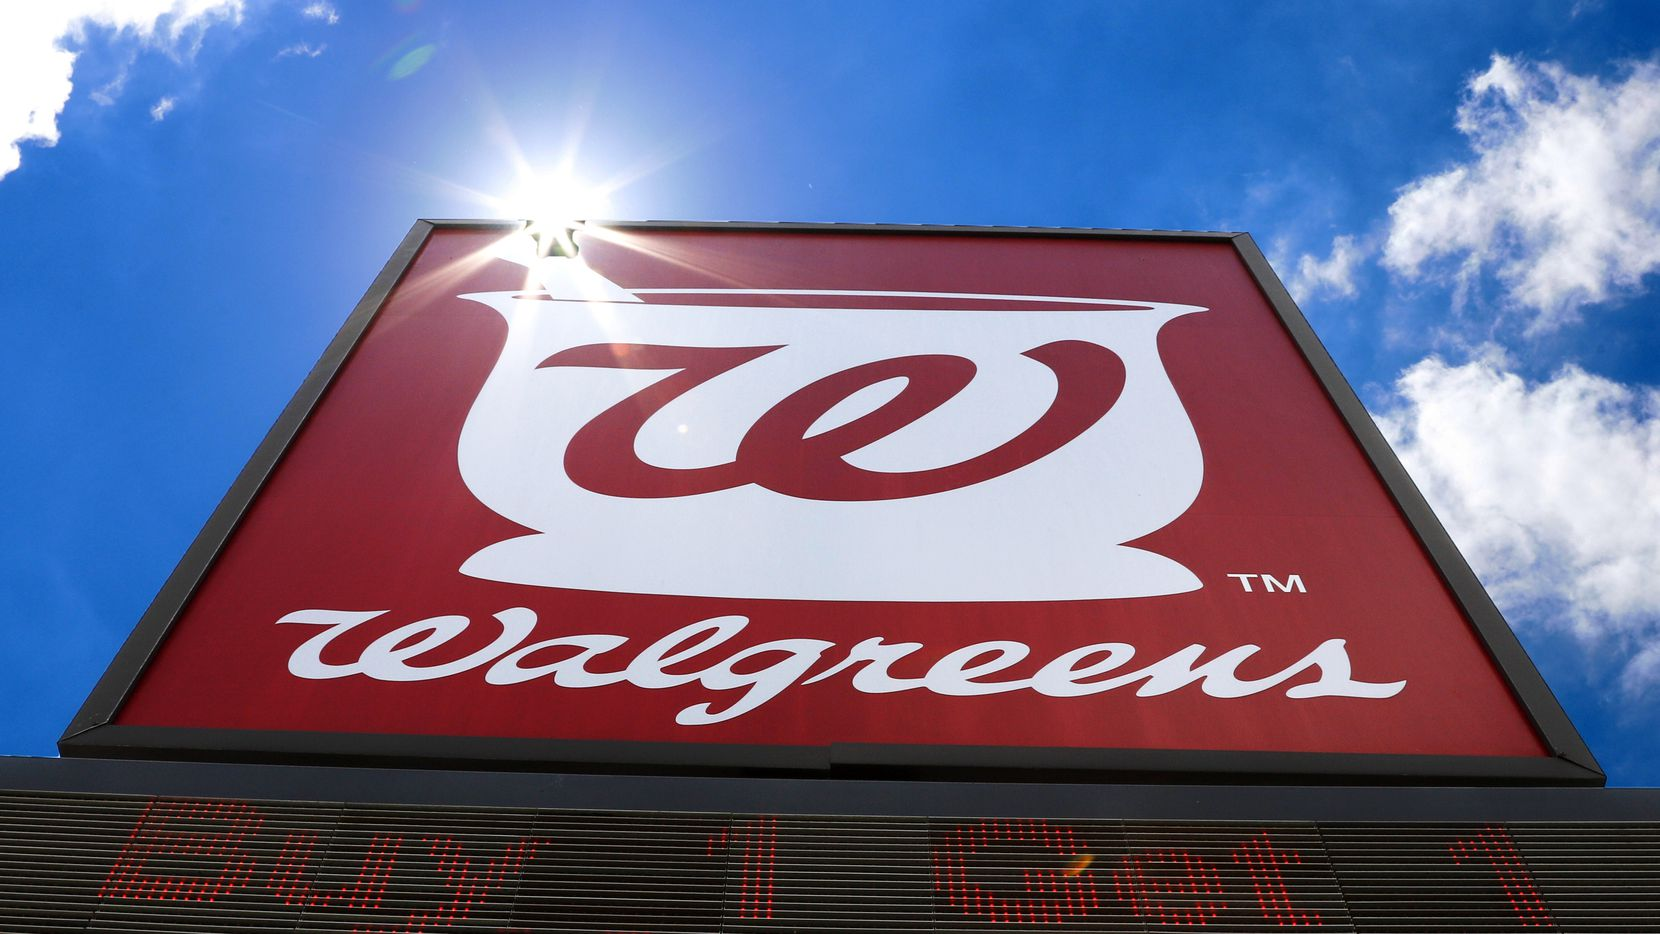 The 24-hour Walgreens on Lemmon and McKinney in Uptown closed this week for a deep cleaning after an employee tested positive for COVID-19. Retailers are taking preventative measures, such as requiring masks and putting up plexiglass barriers, but they also need a plan for what happens when team members test positive for the coronavirus.